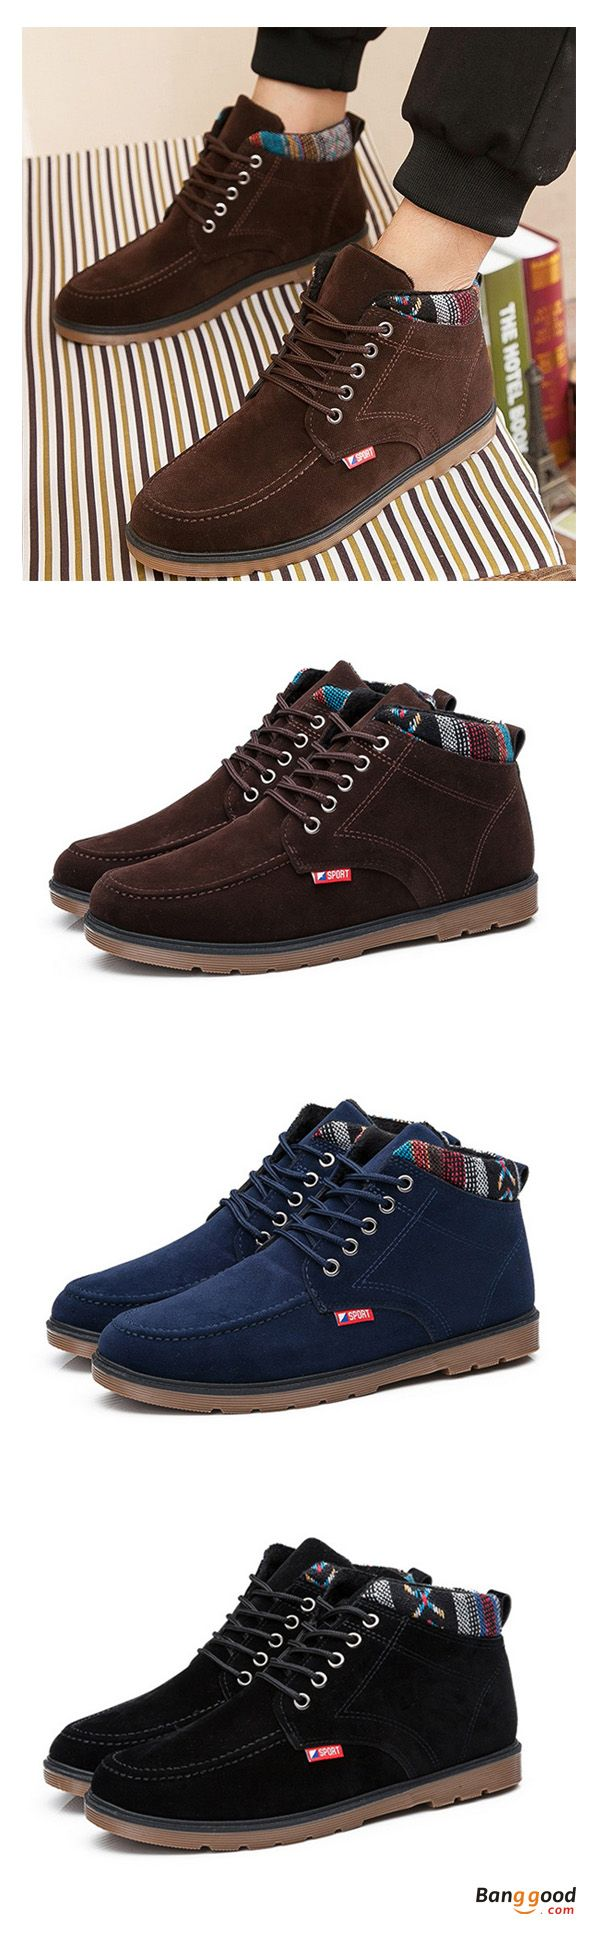 US$37.28+Free shipping. Short Boots For Men,  Lace Up, Round Toe, Color: Black, Brown, Blue. Shop now~